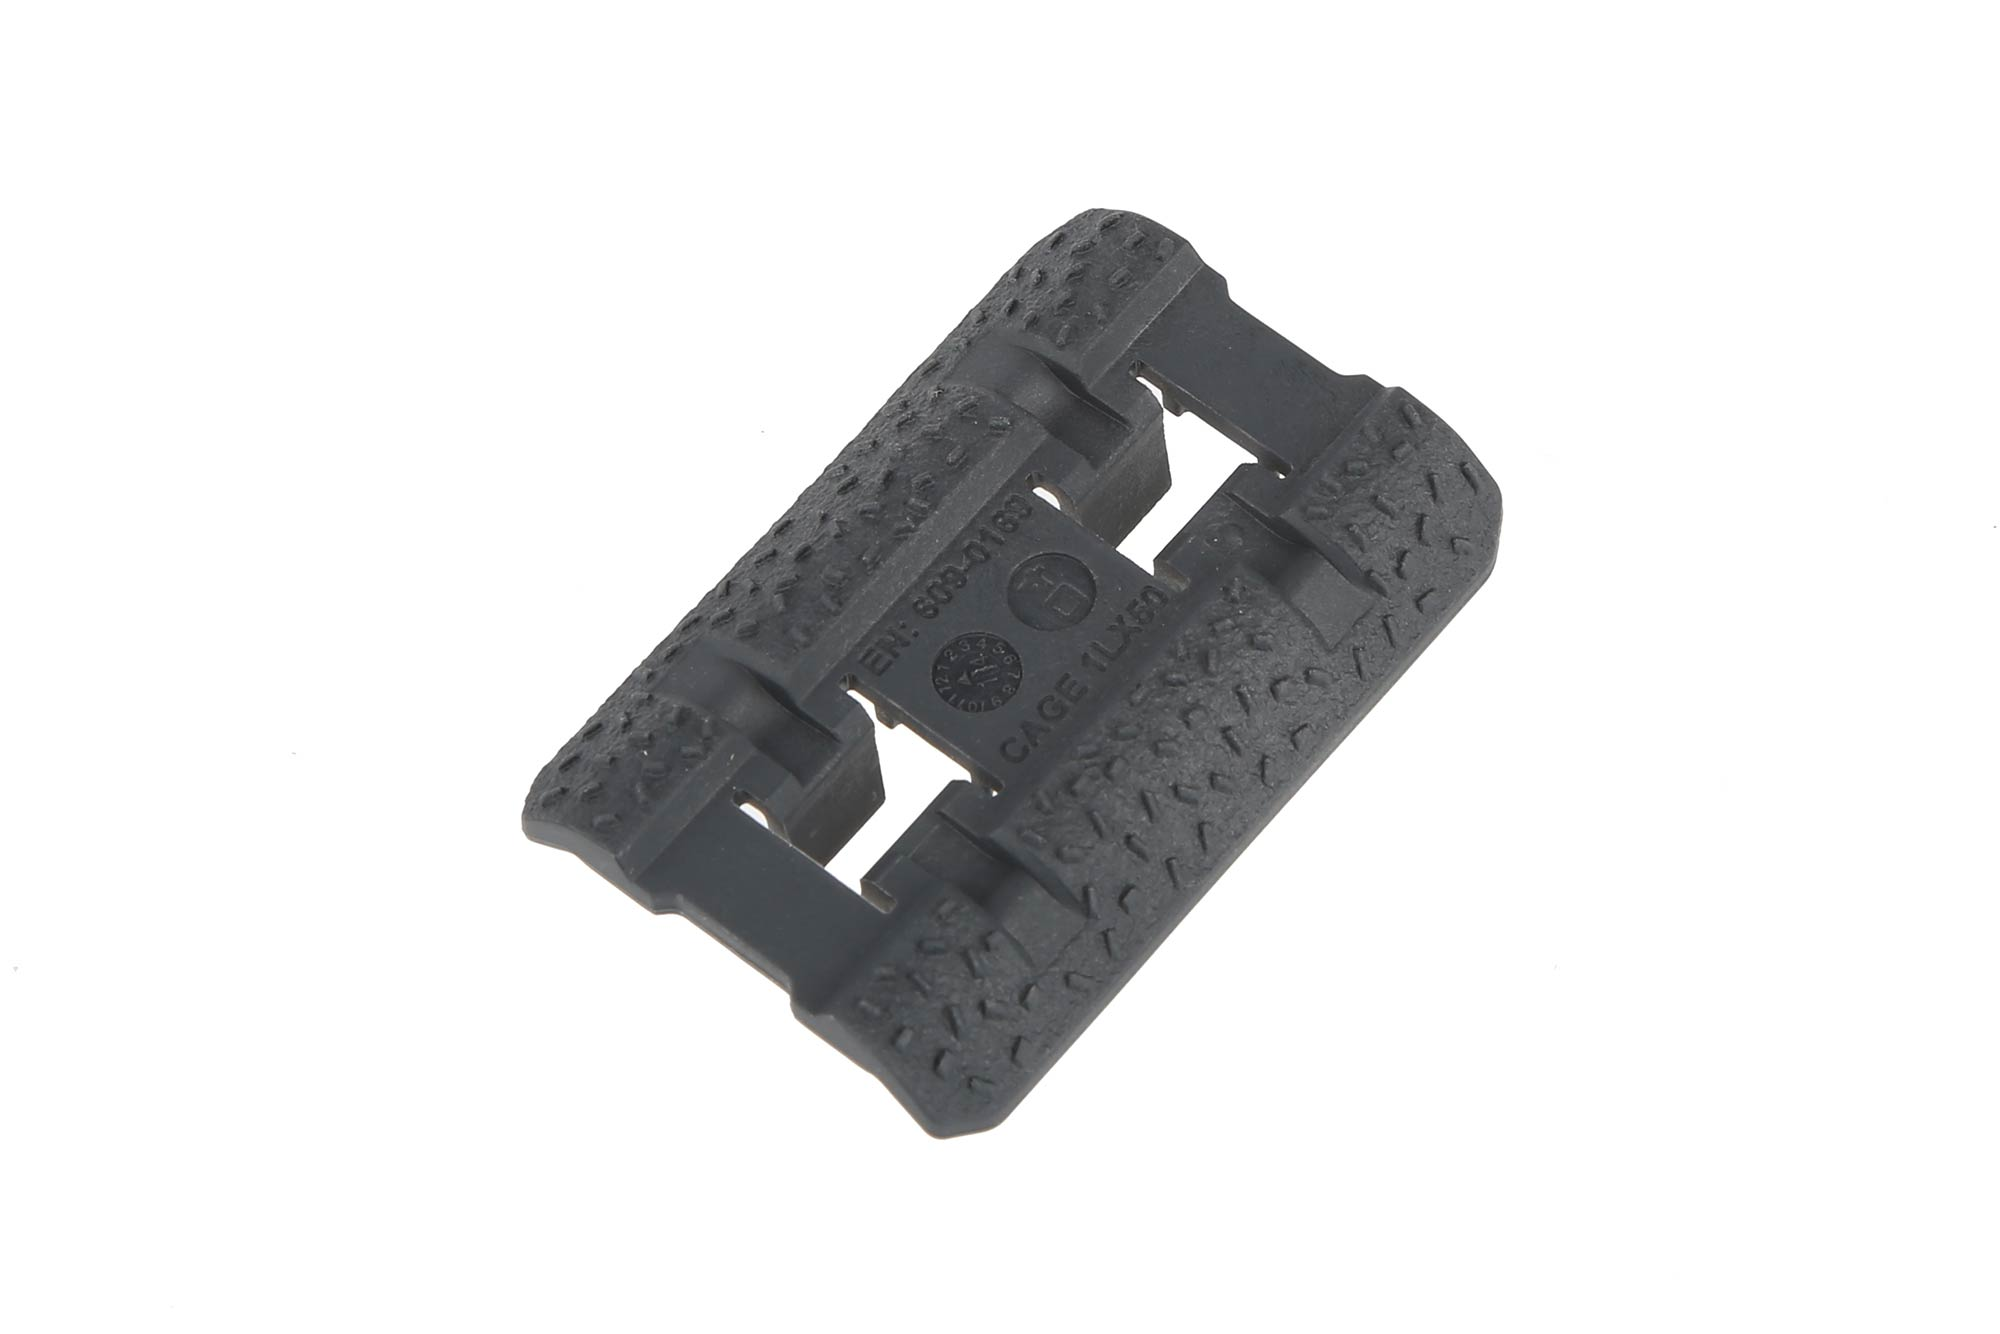 The Magpul Industries stealth gray rail cover attaches directly to M-LOK handguards